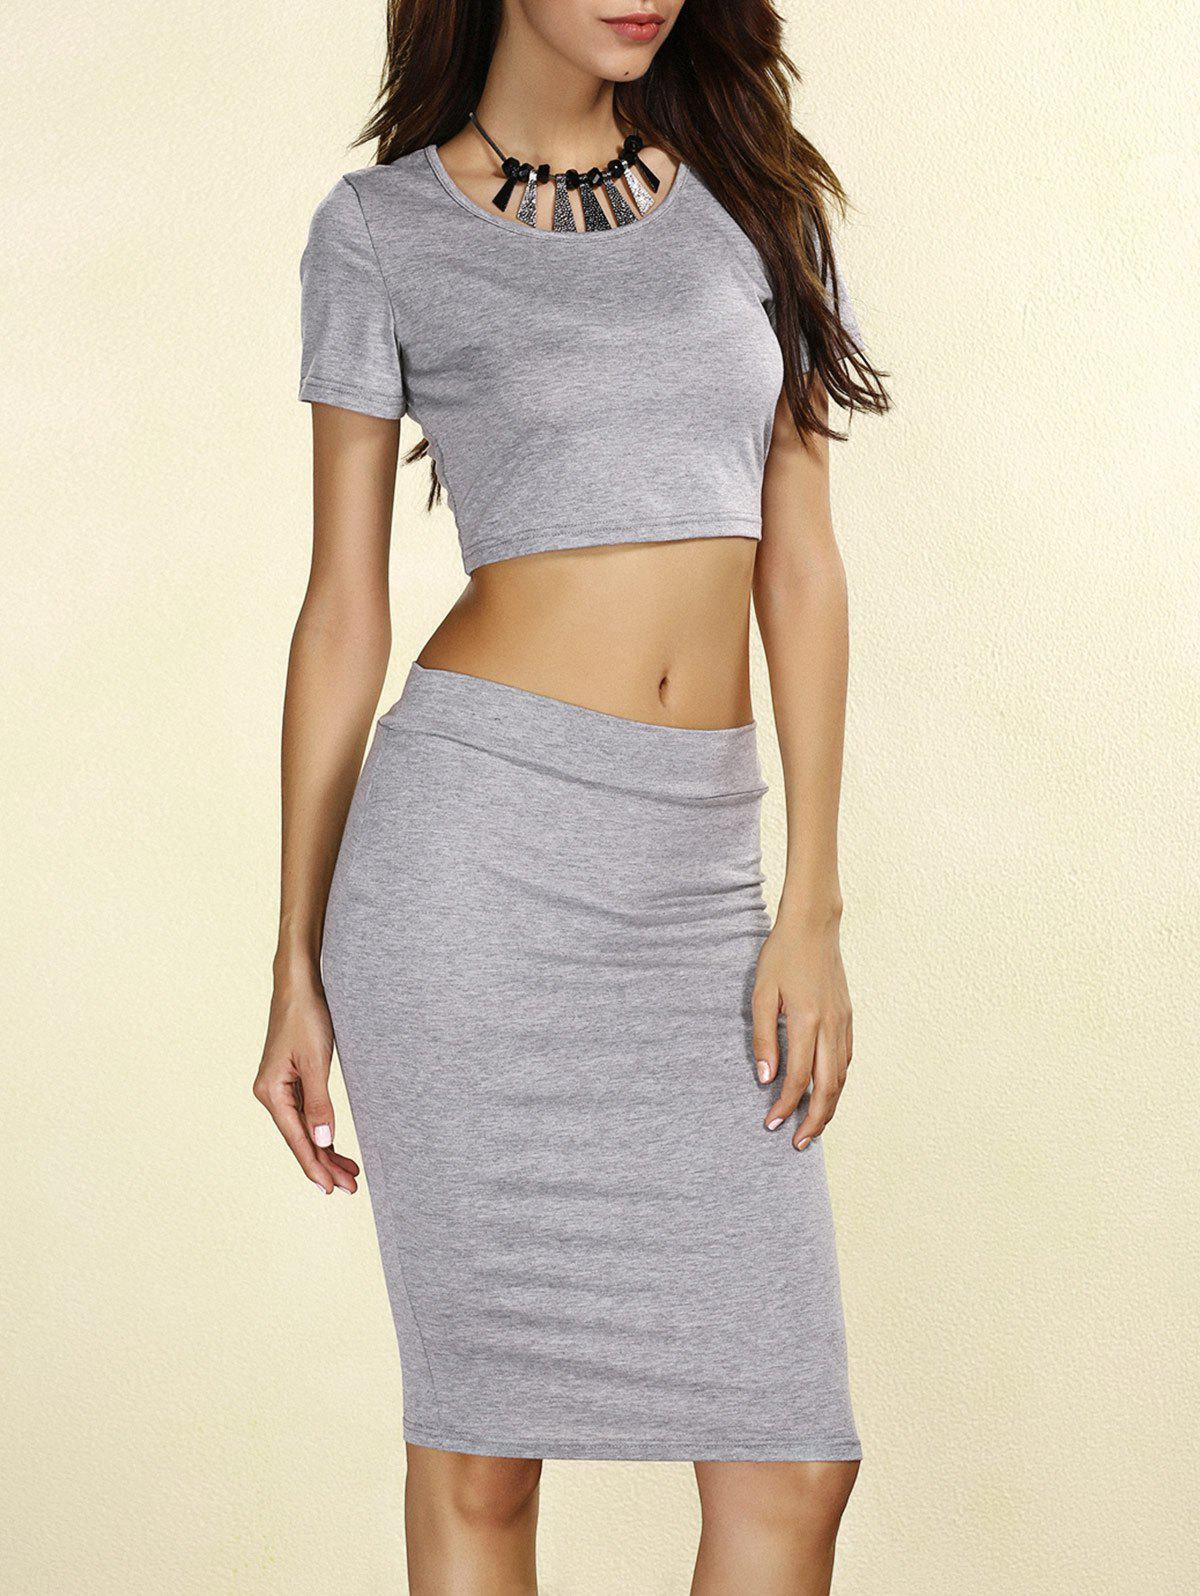 High Rise Two Piece Bodycon Dress - GRAY L